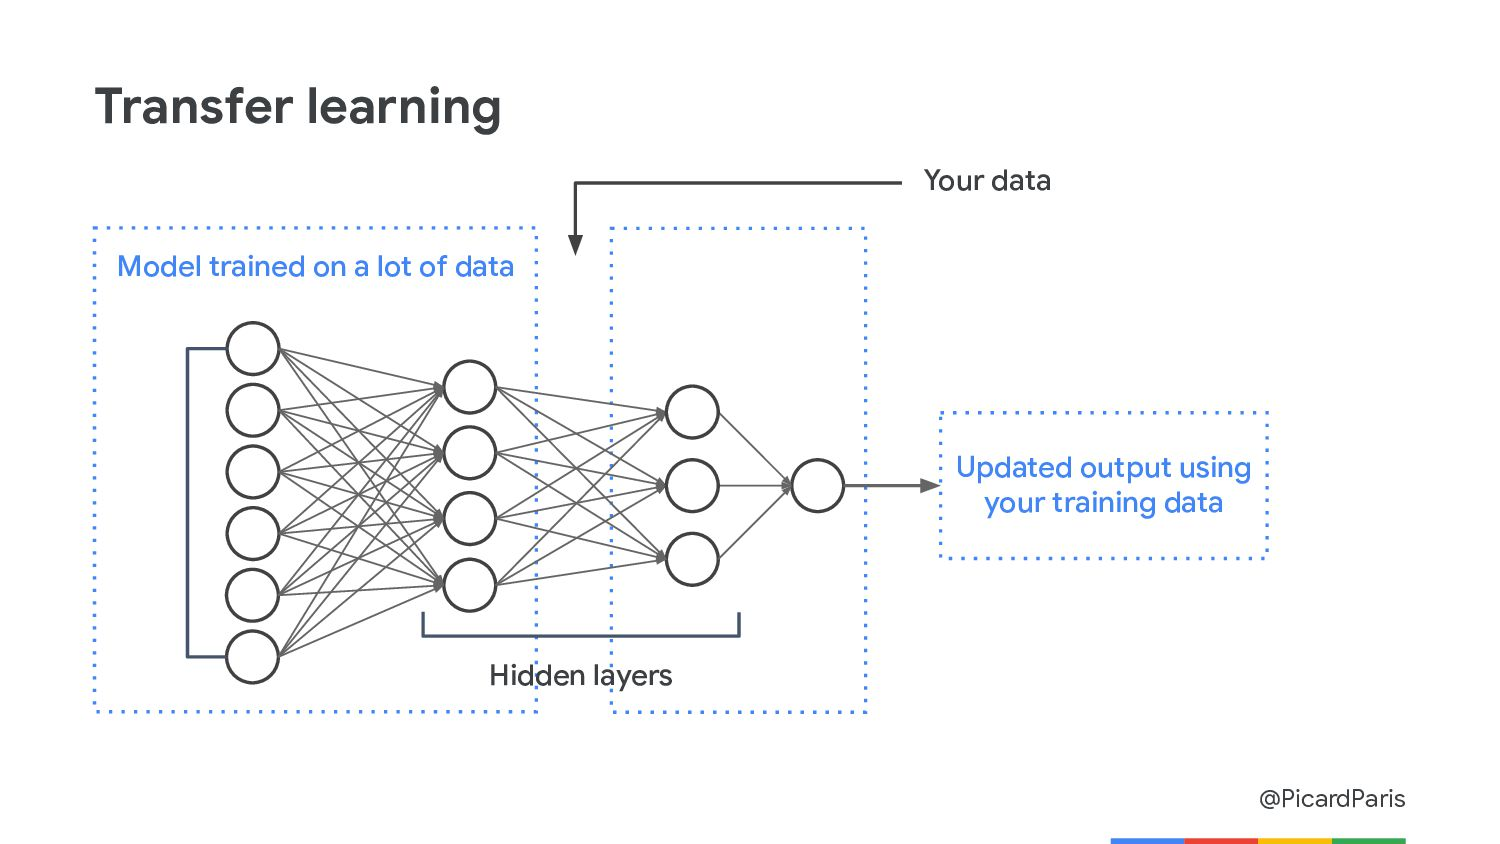 03 More machine learning! Build your neural net...